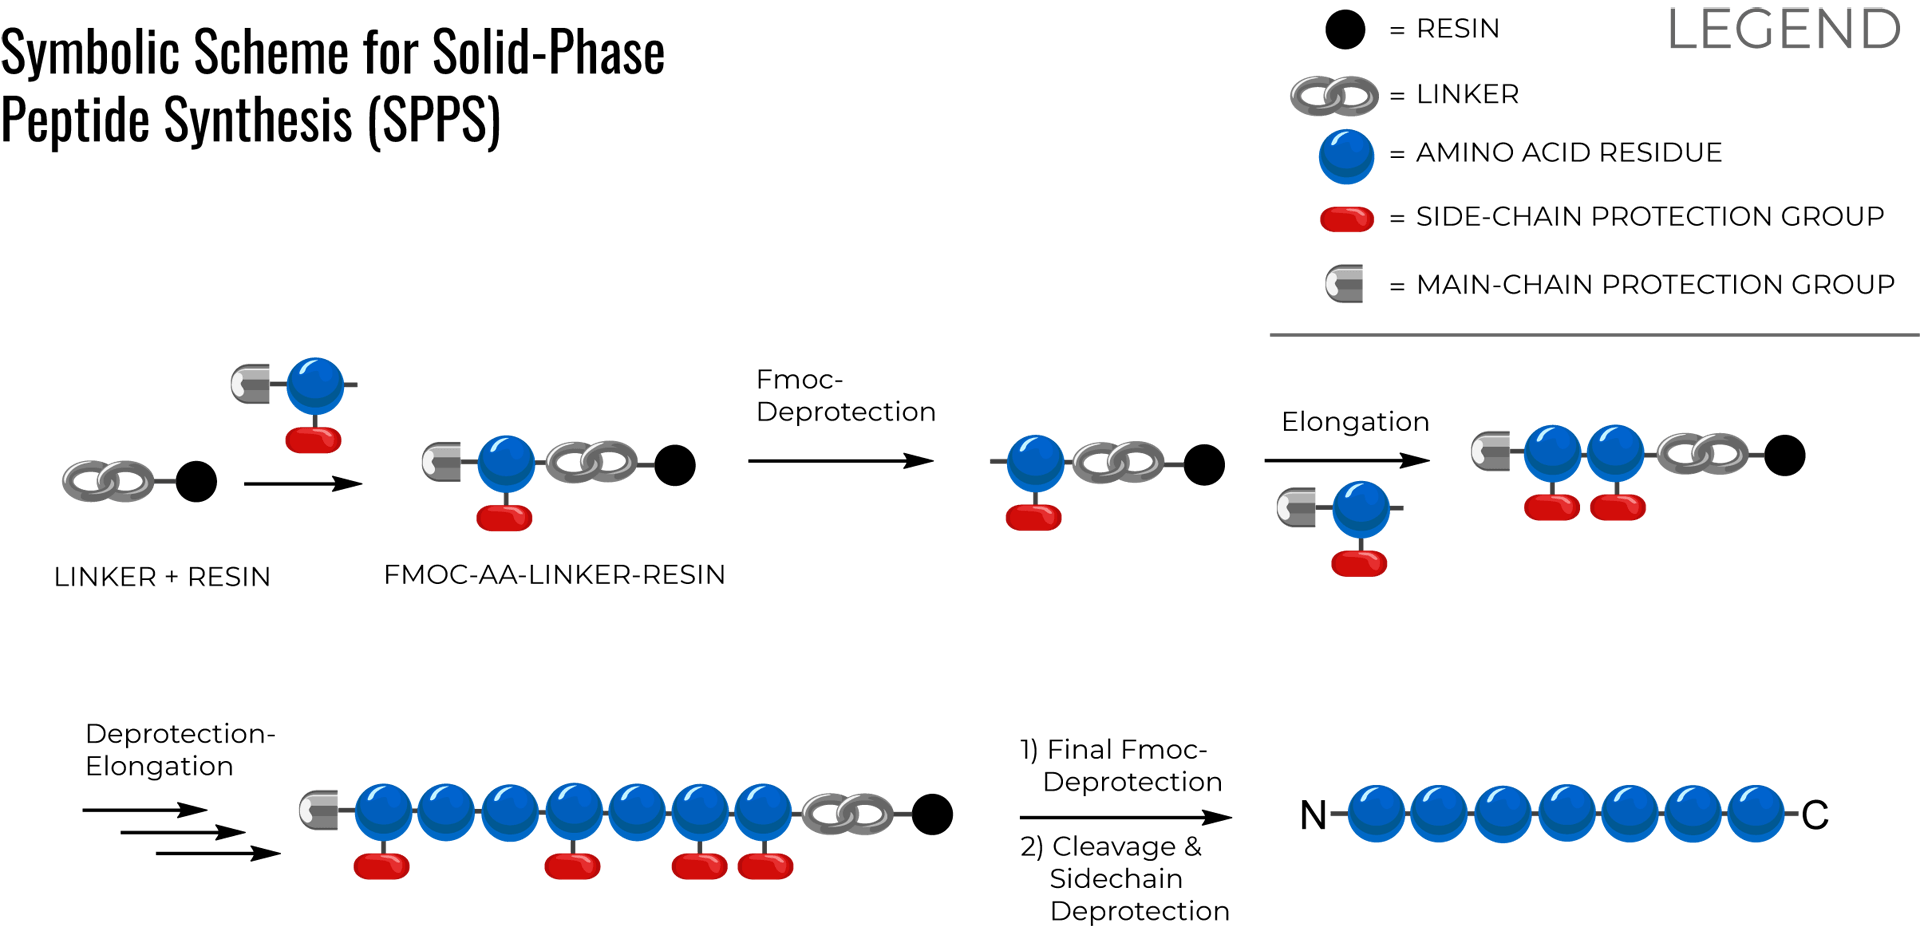 Solid-phase peptide synthesis (SPPS) scheme